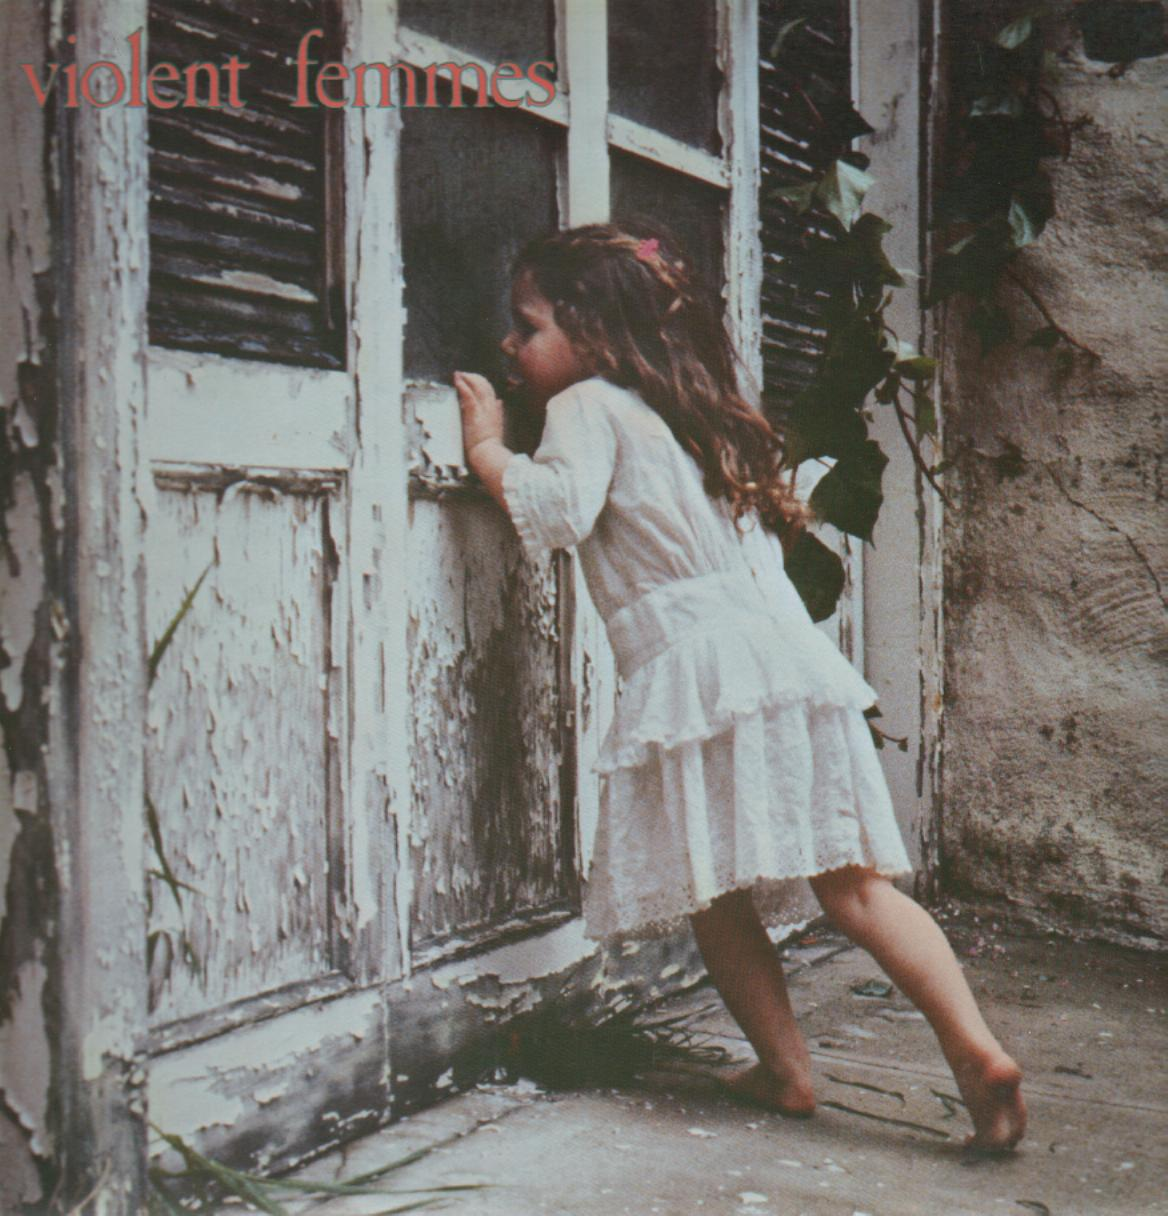 violent femmes album cover